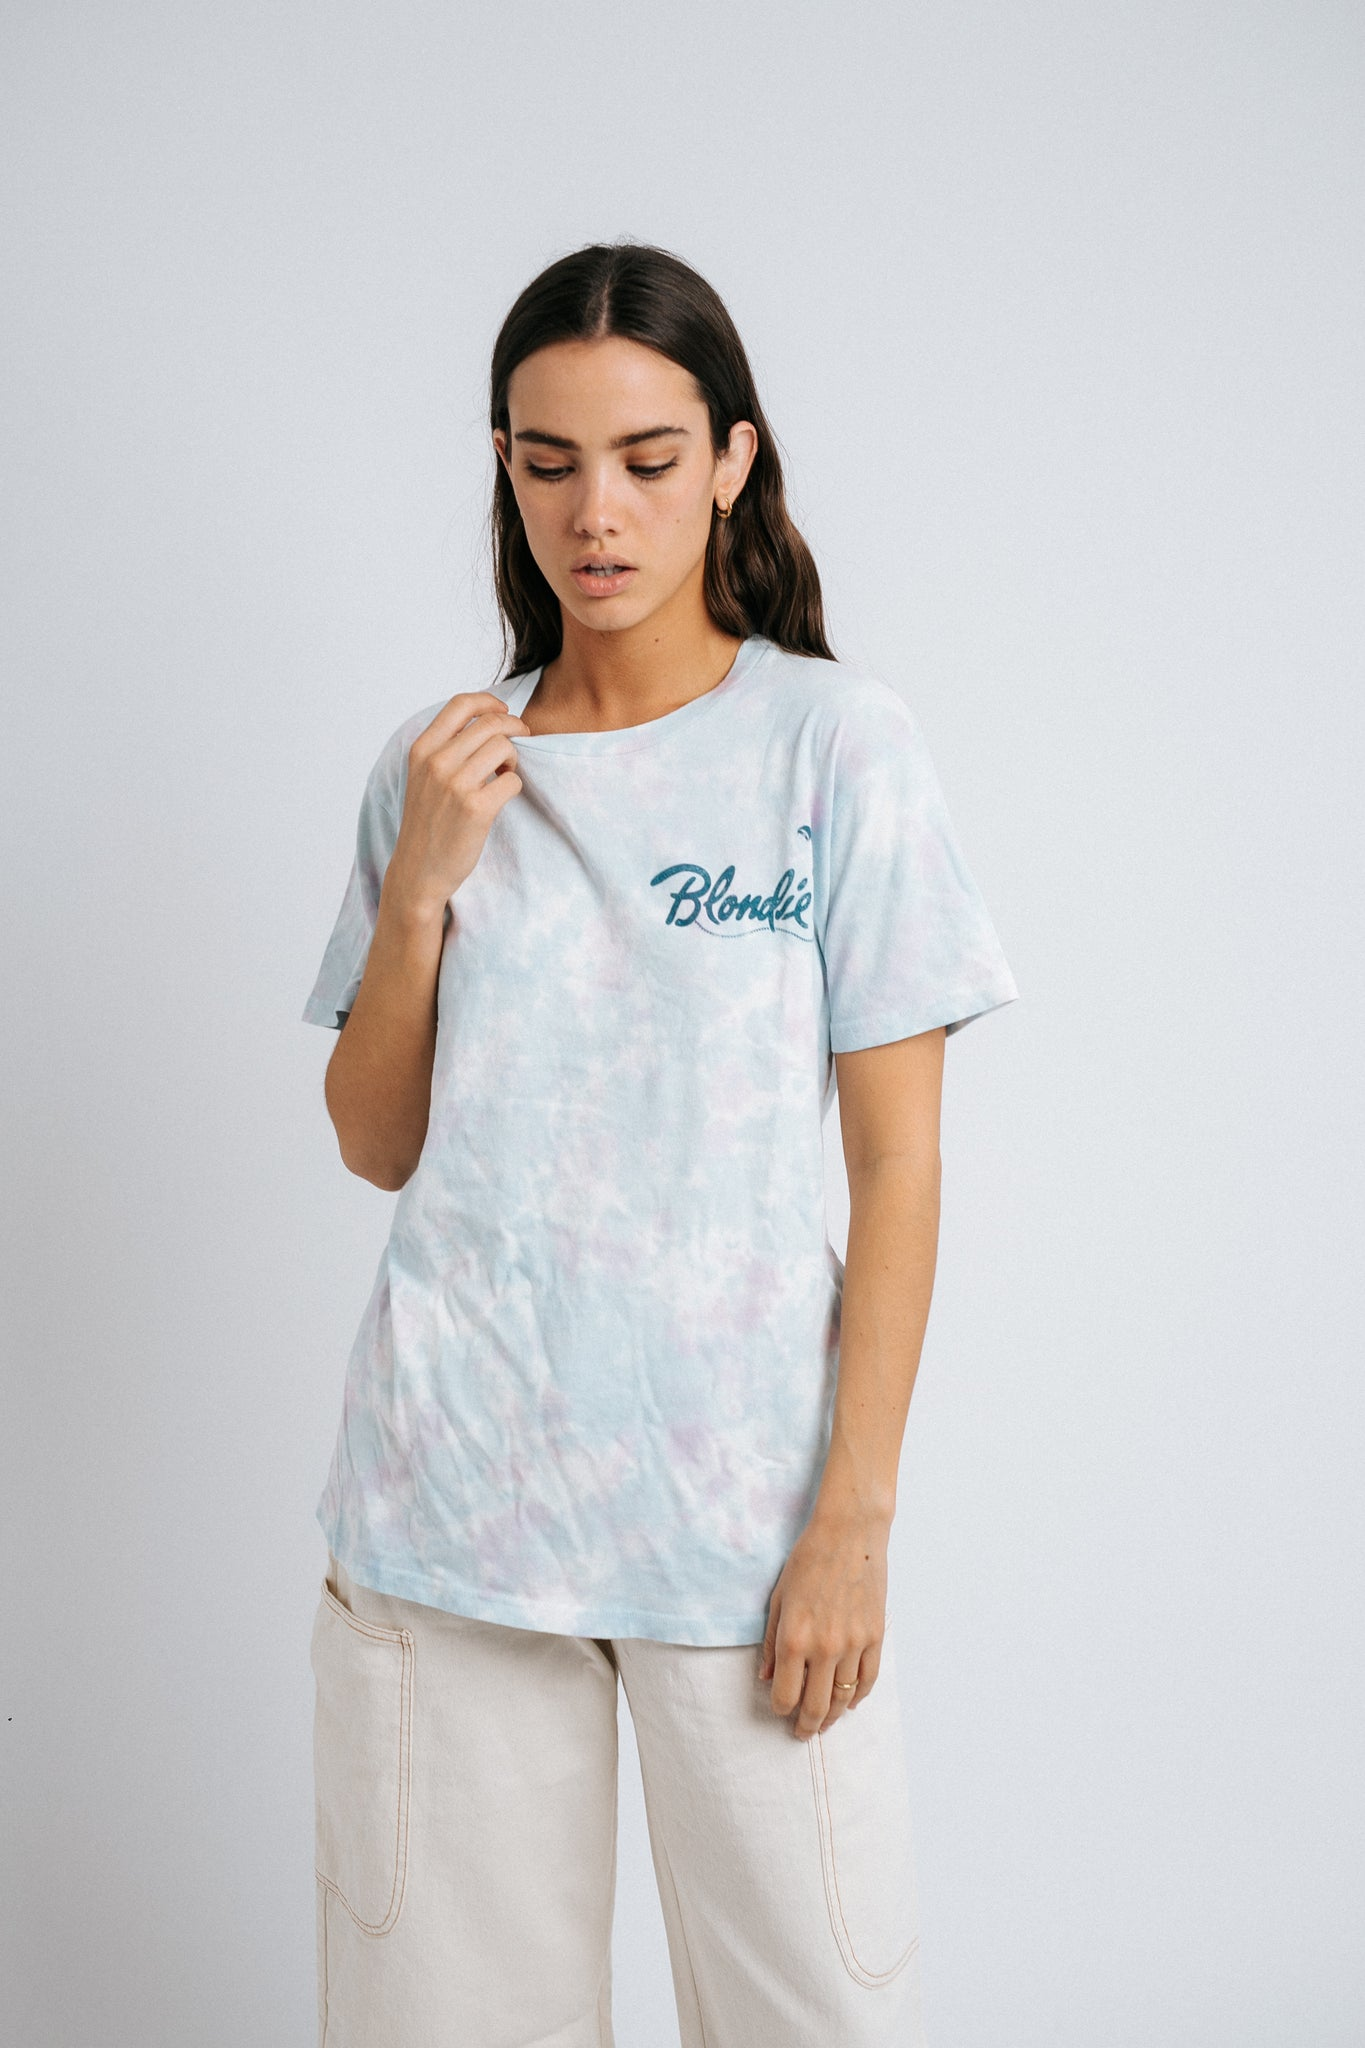 Blondie Cotton Candy Tee